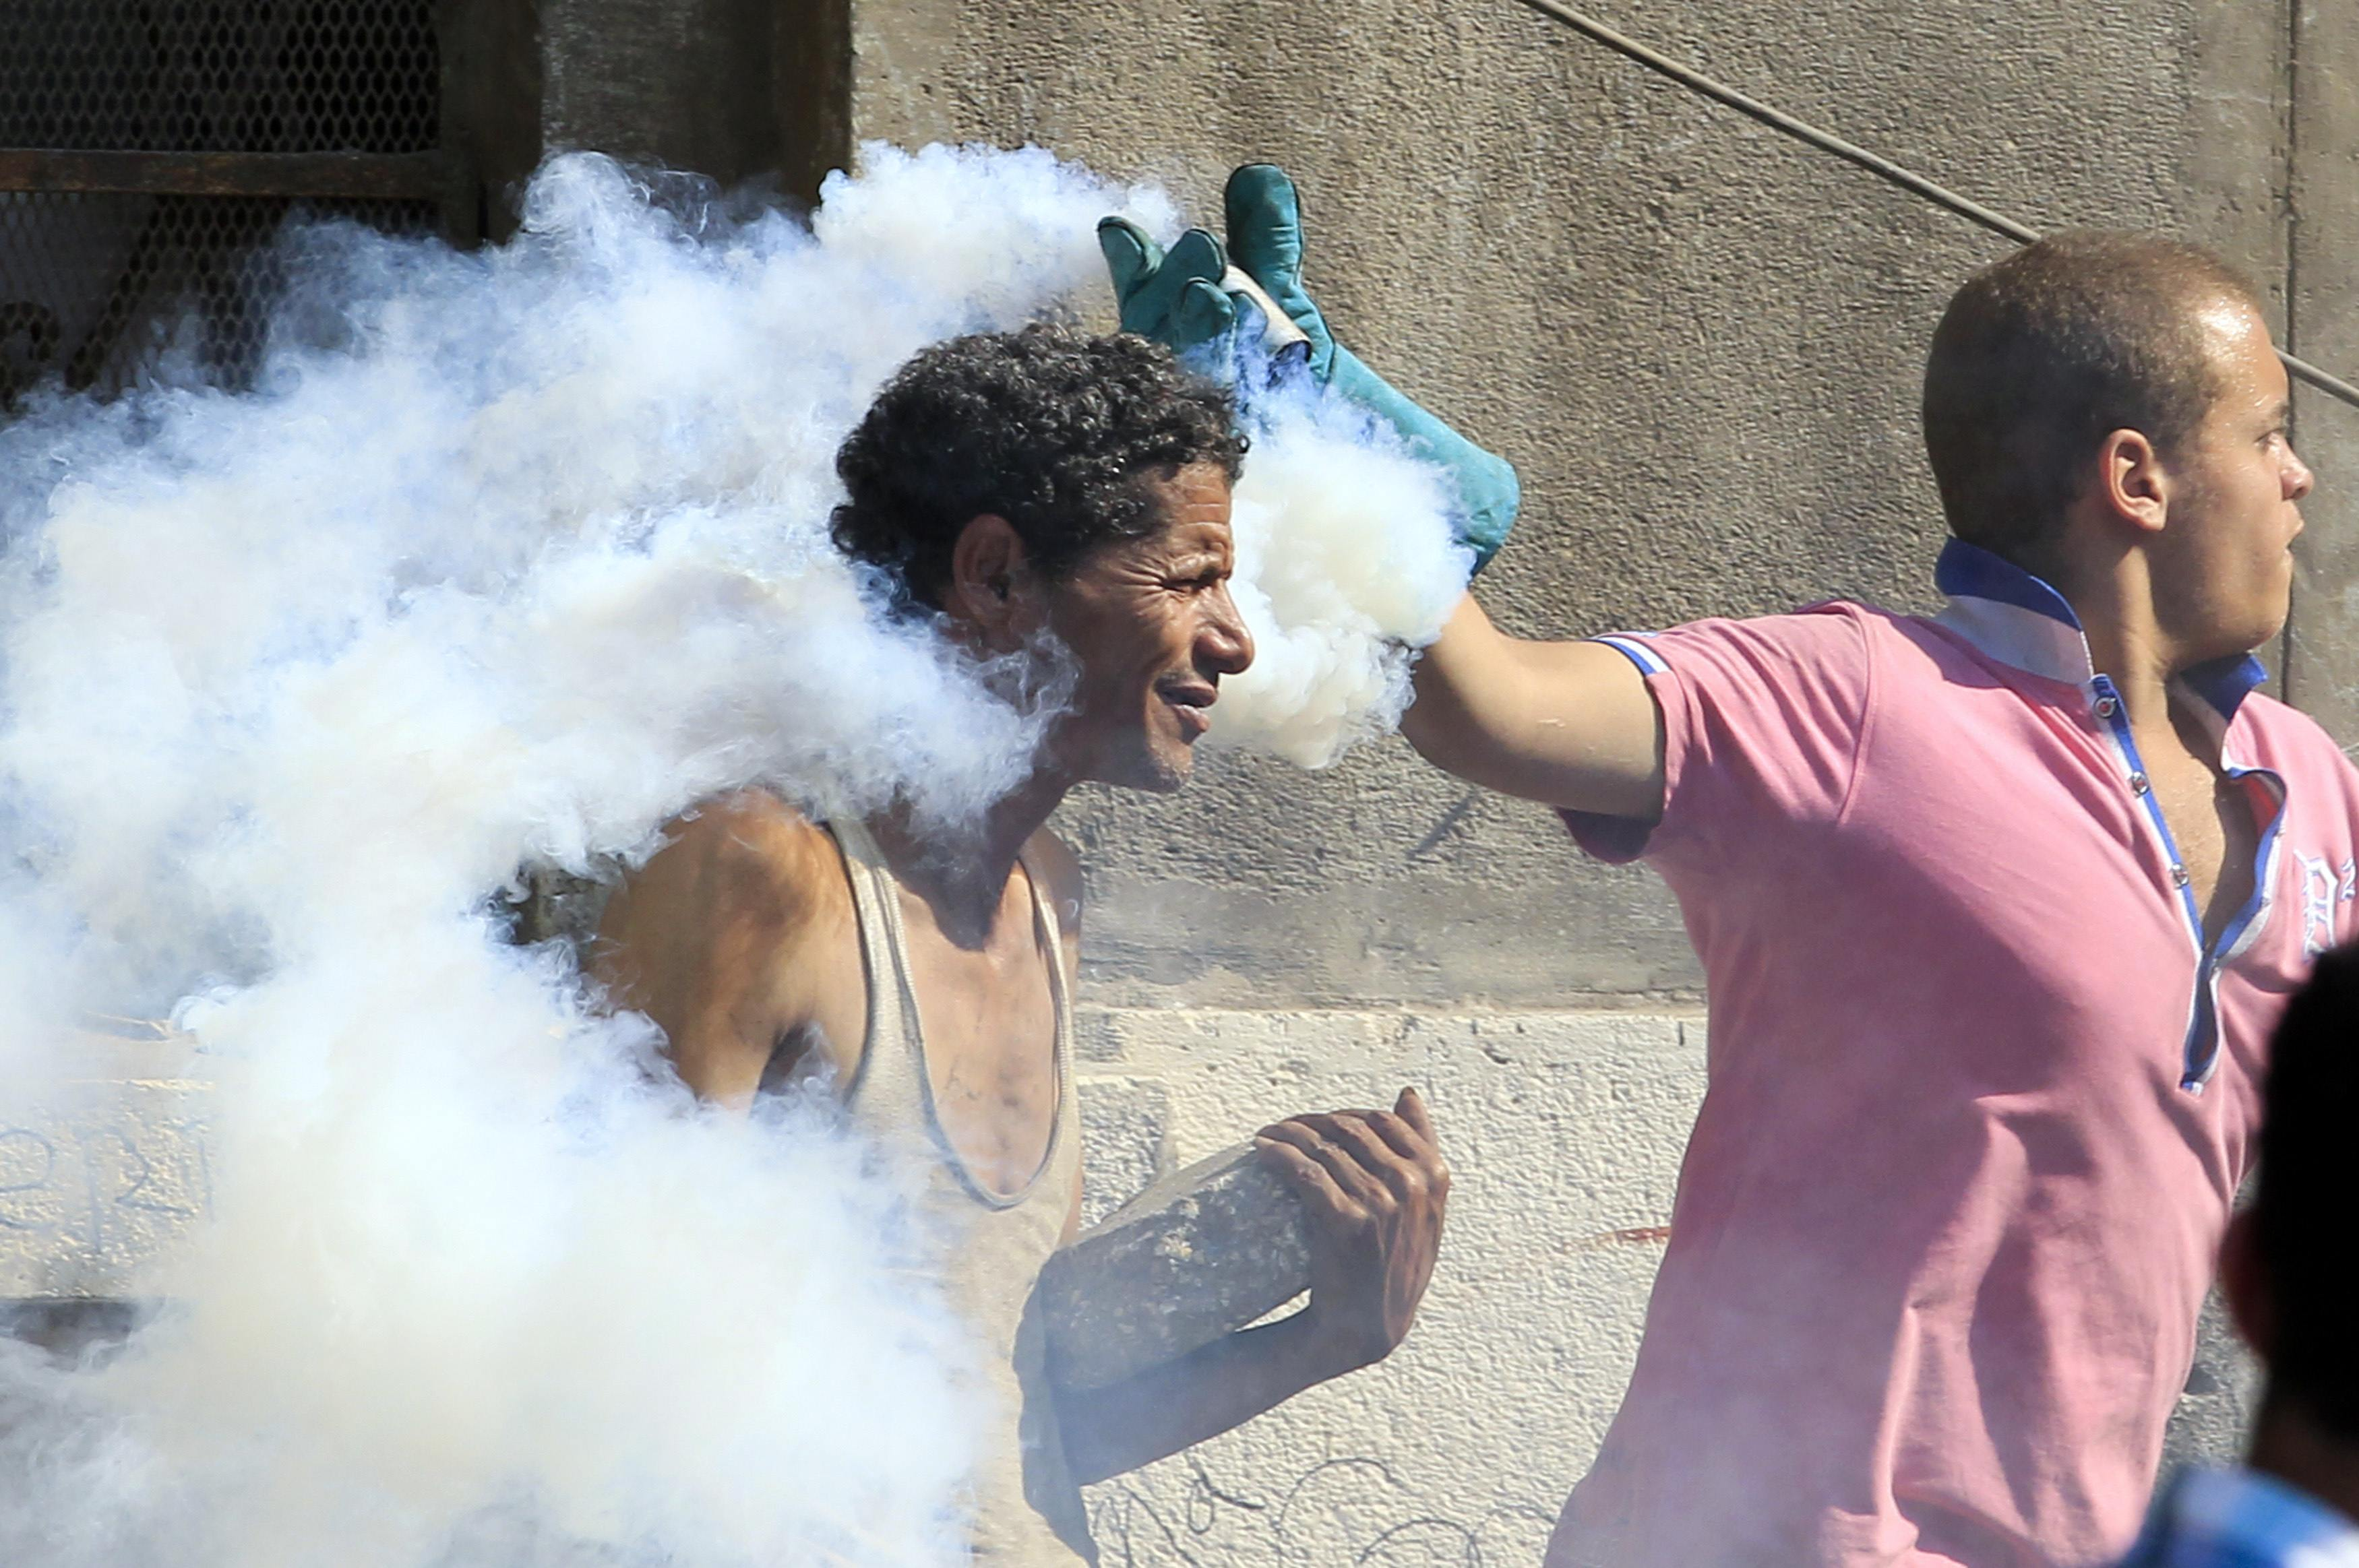 An Egyptian protester throws a tear gas canister, which was earlier thrown by riot police,and another throws a stone during clashes along a road which leads to the U.S. embassy, near Tahrir Square in Cairo. (Mohamed Abd El Ghany/Reuters)